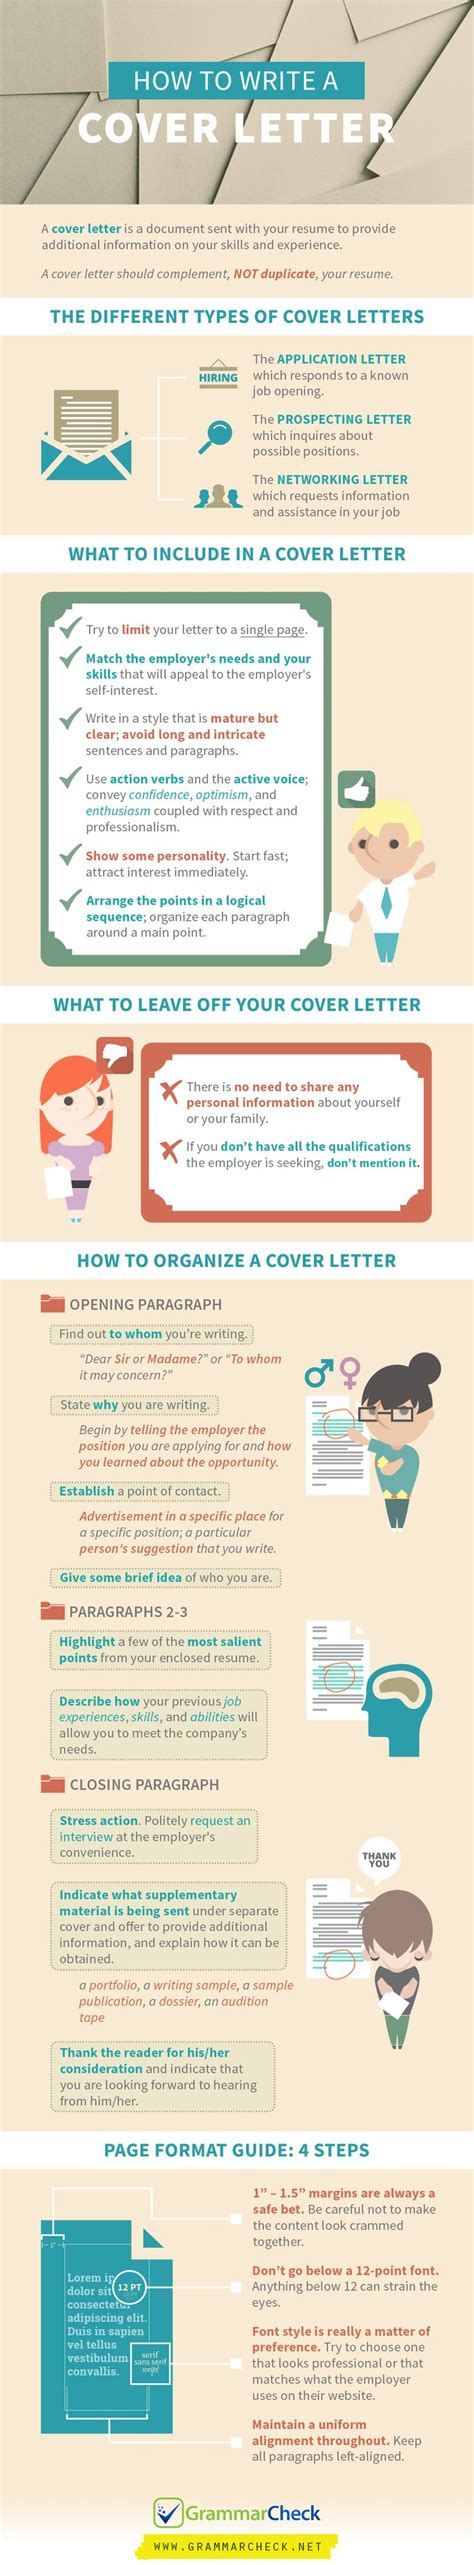 how to write a cover letter step by step best 25 application cover letter ideas on